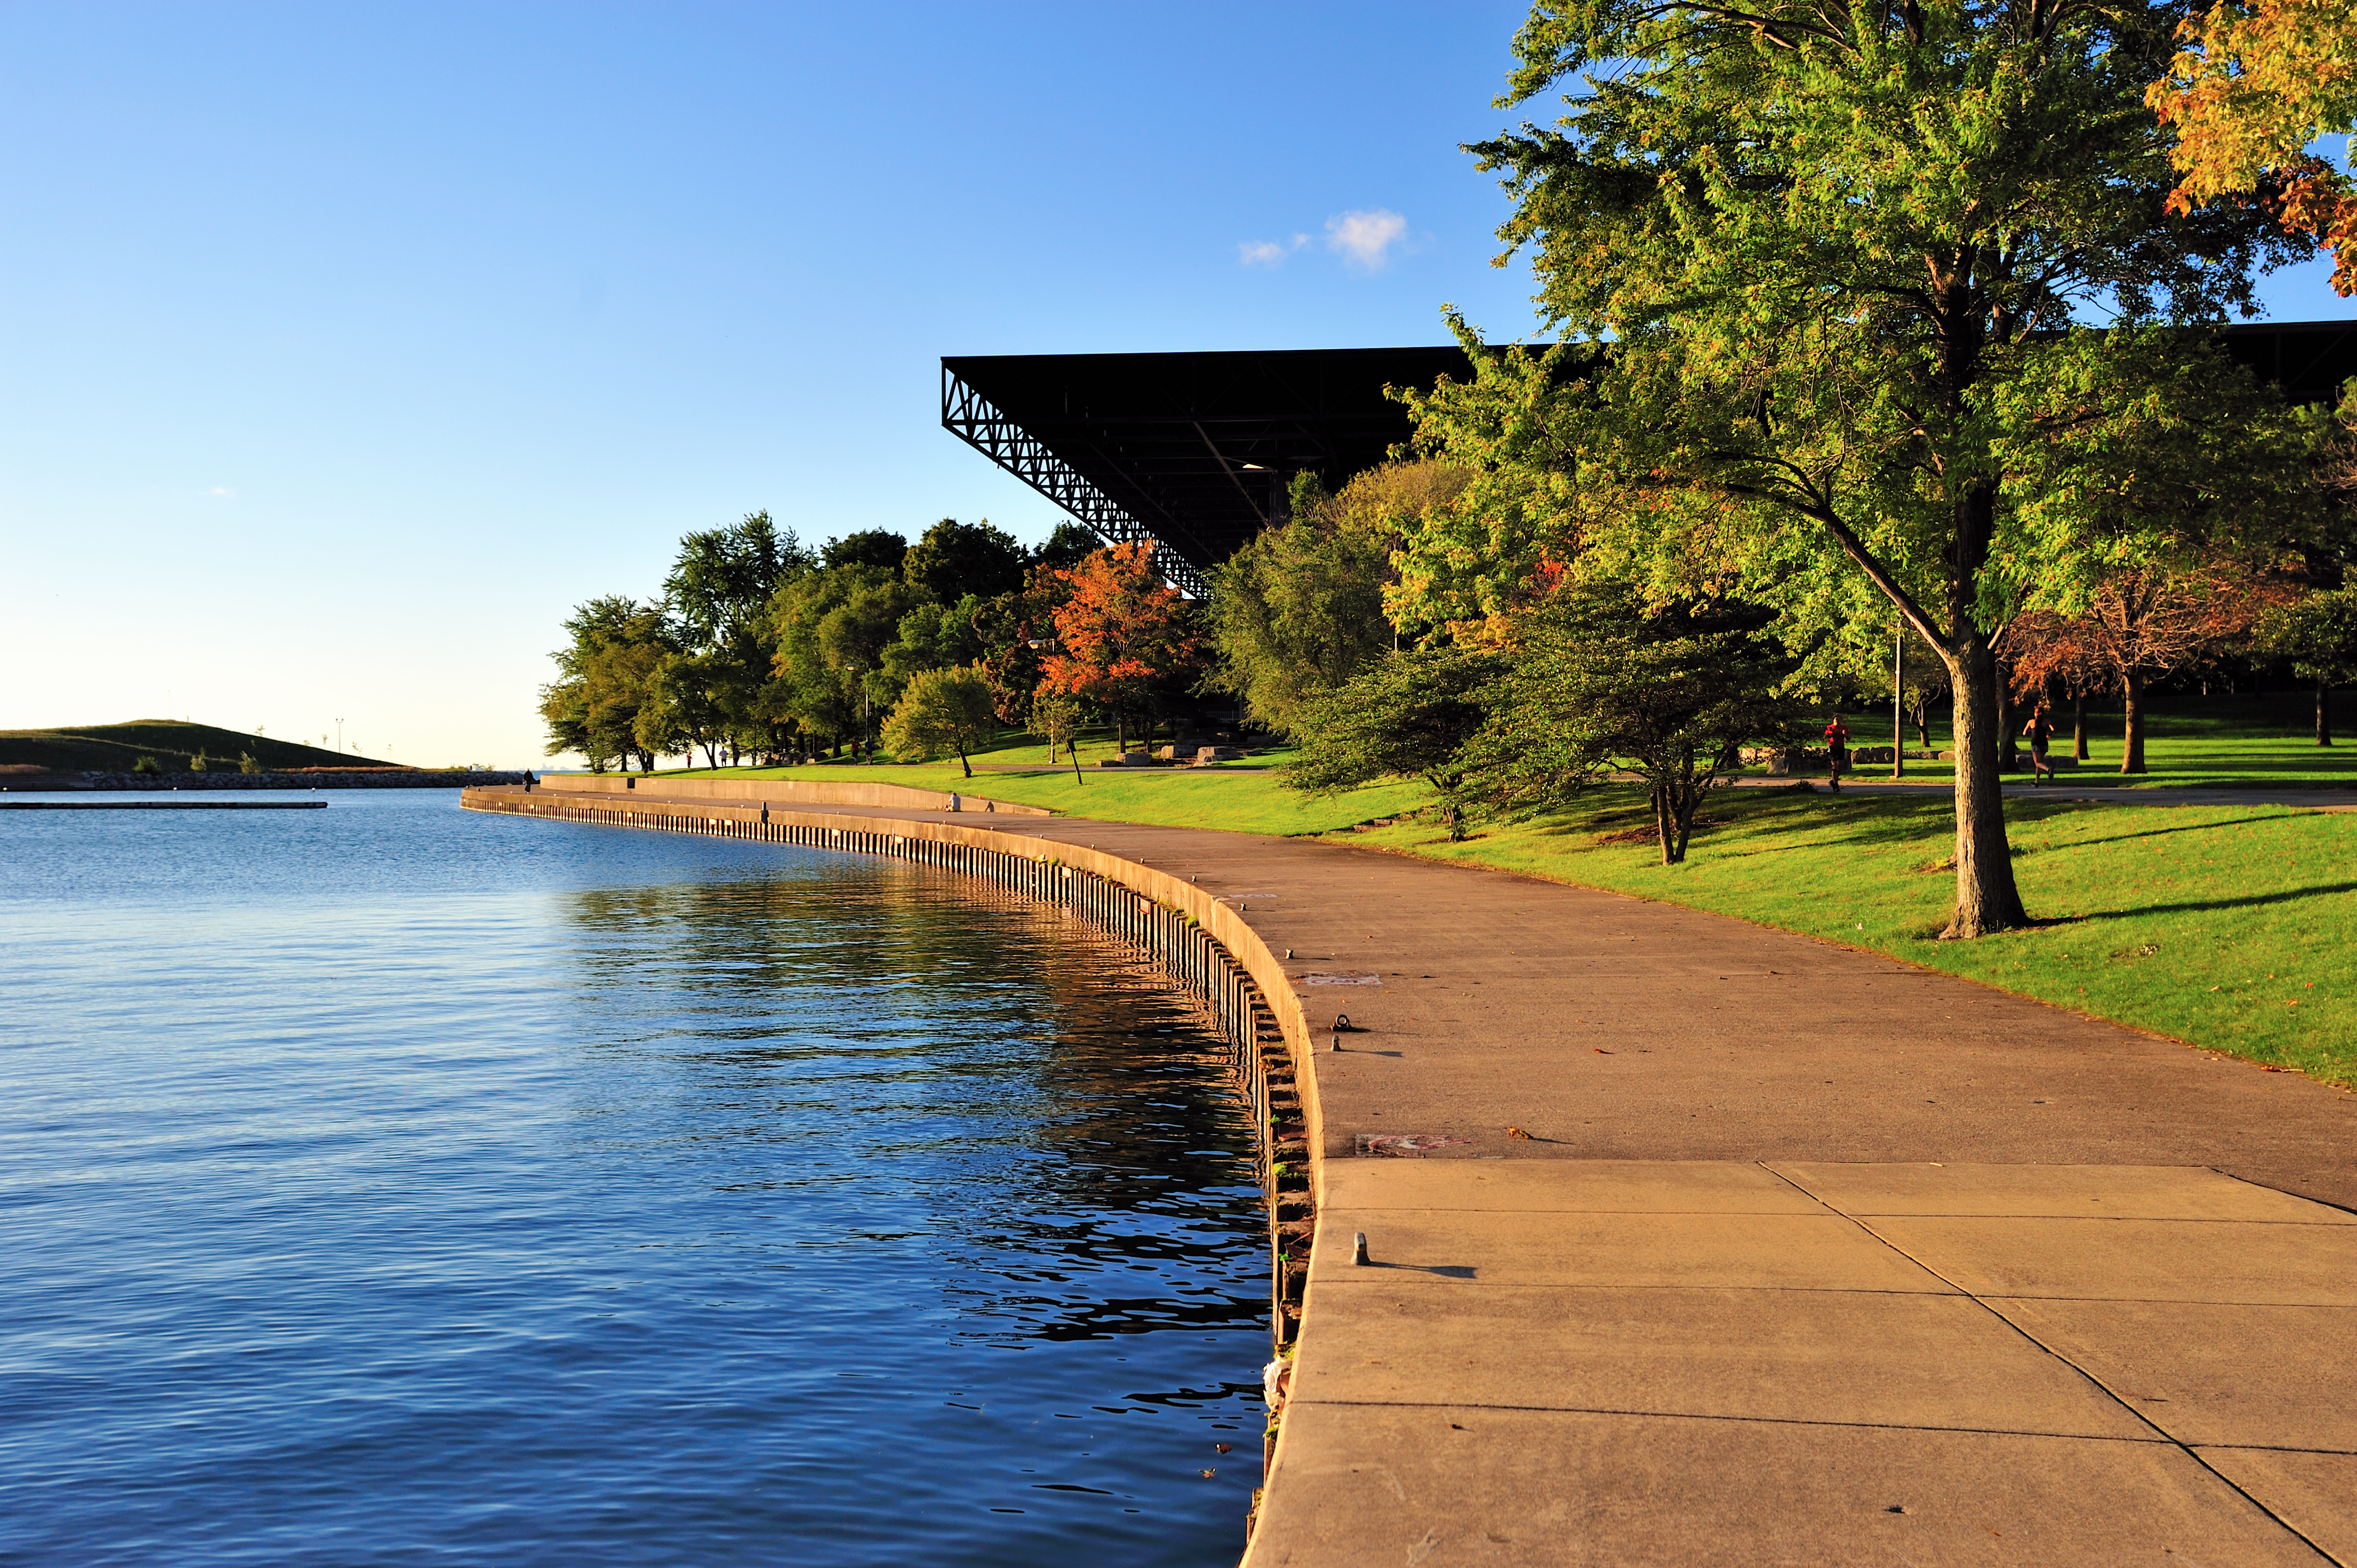 A modernist space-frame building with a flat overhanging eave next to a large body of water.